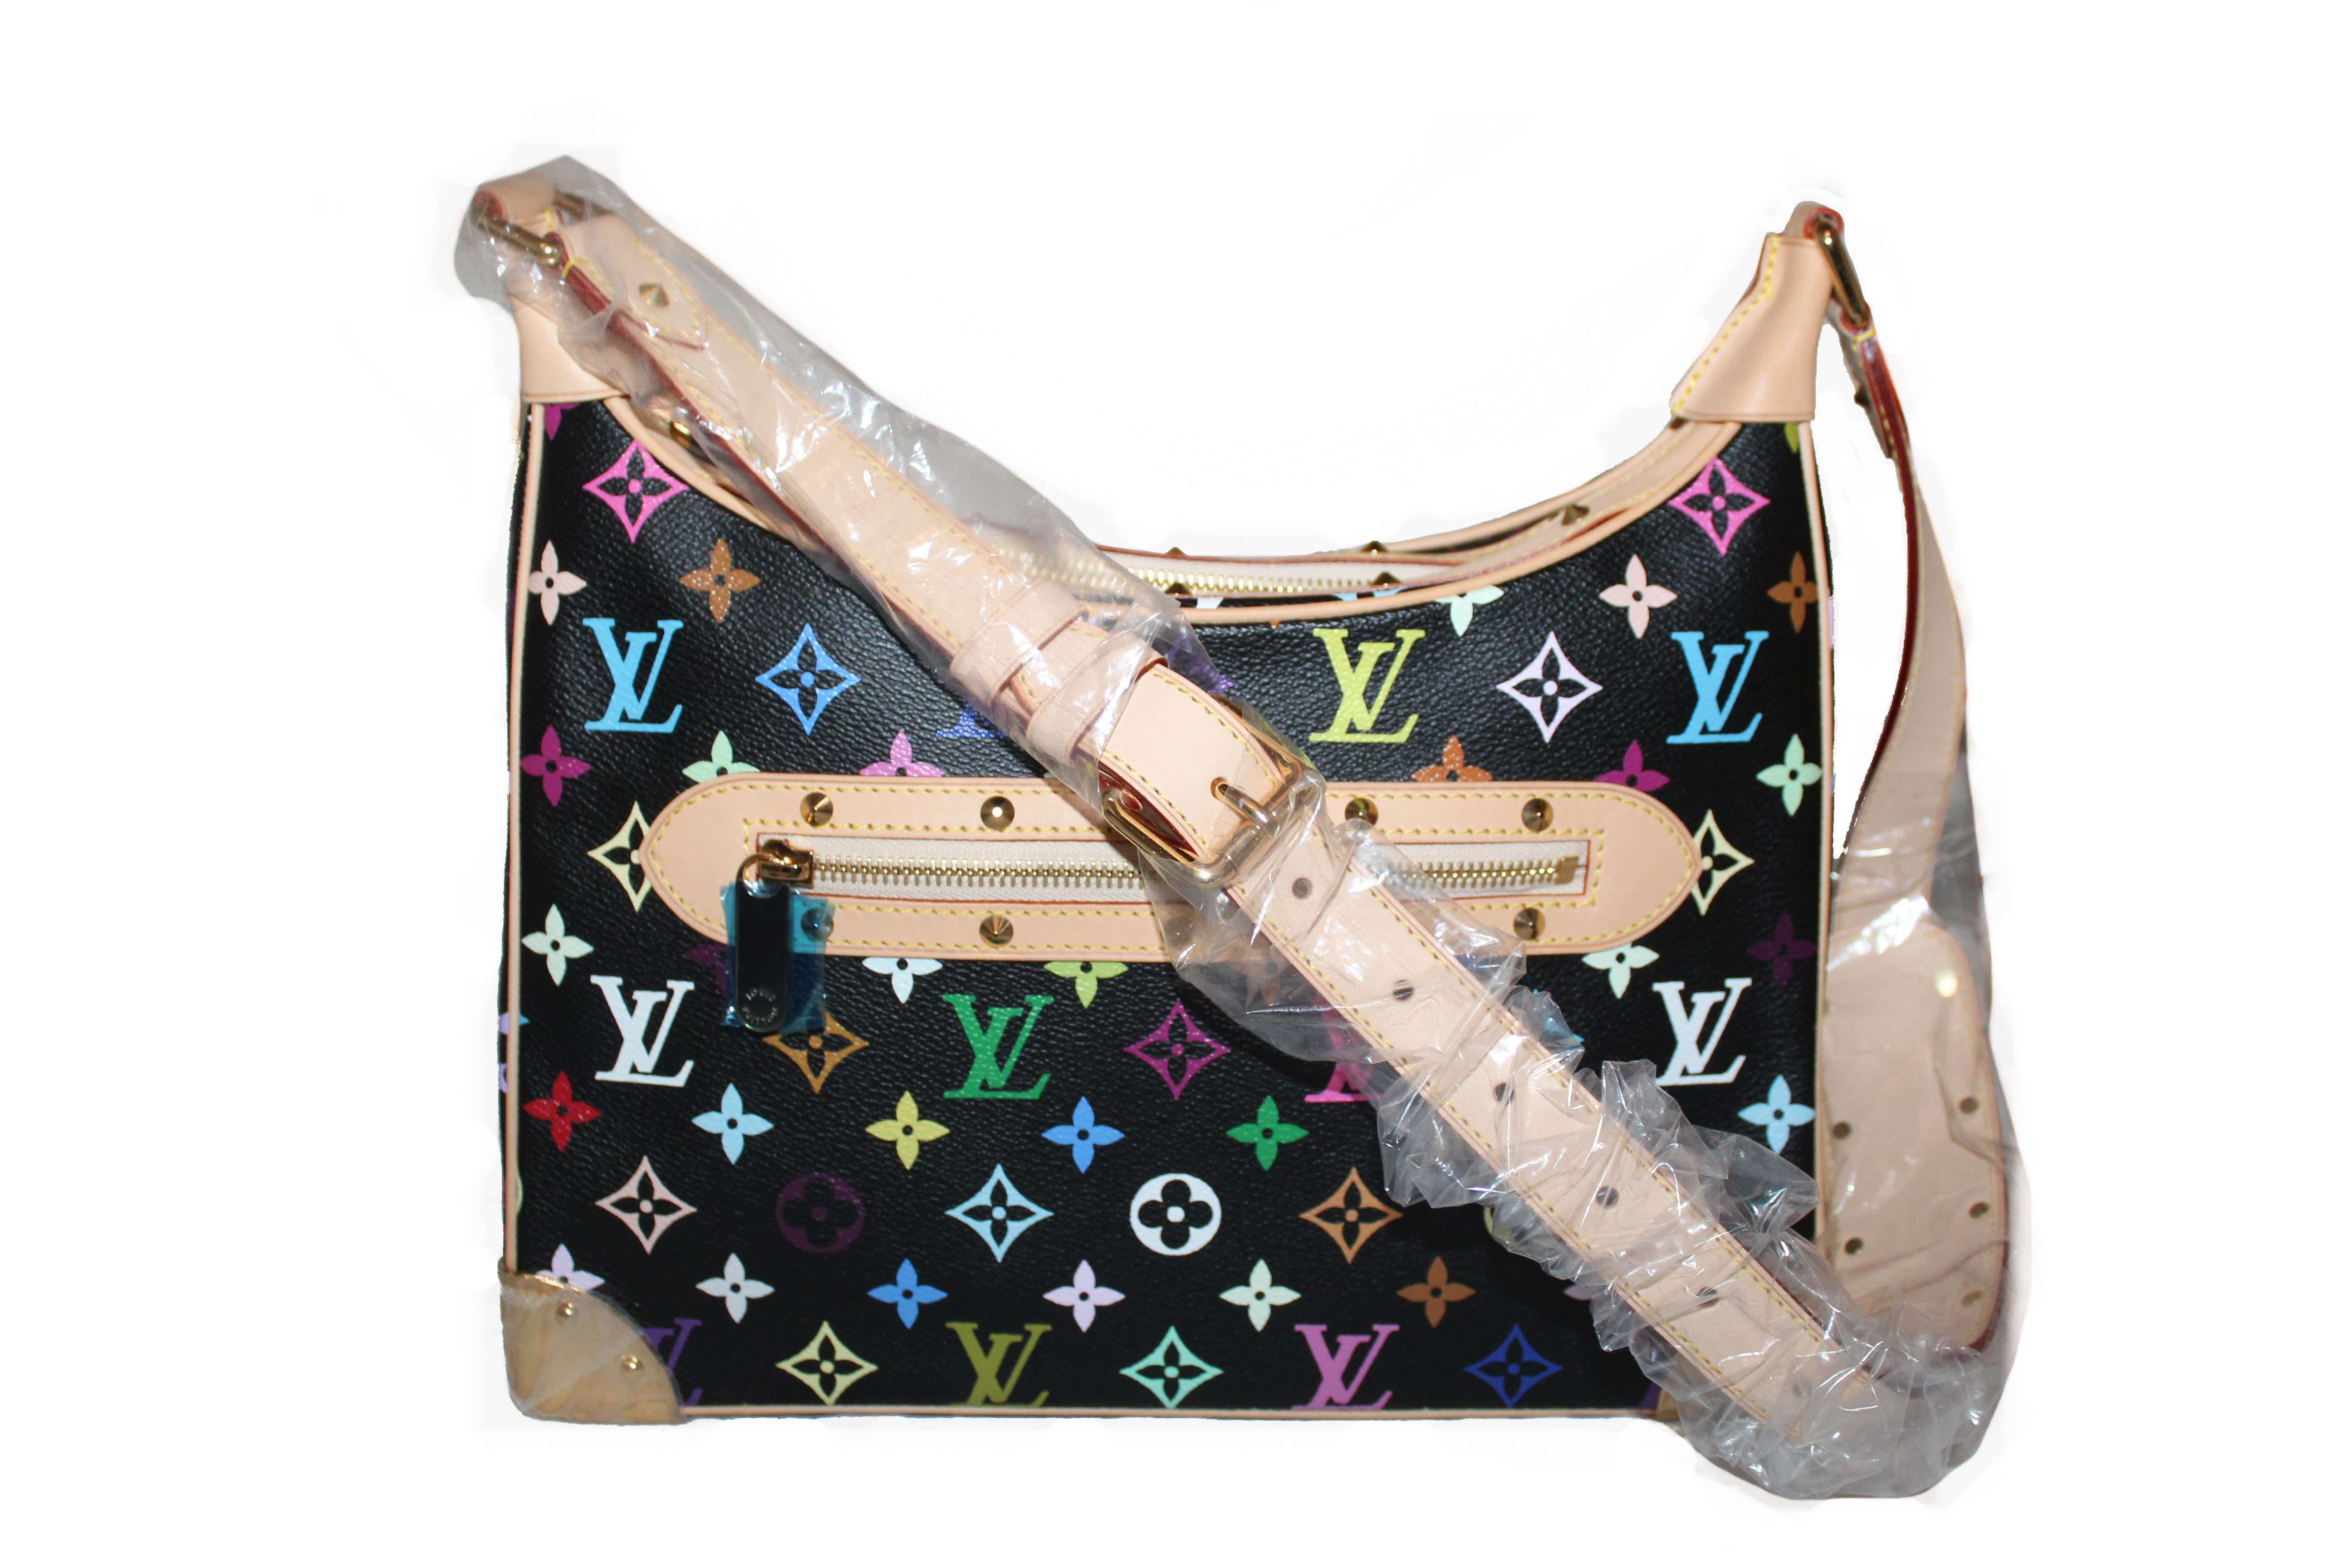 Authentic New Louis Vuitton Black Multicolor Boulogne Shoulder Bag